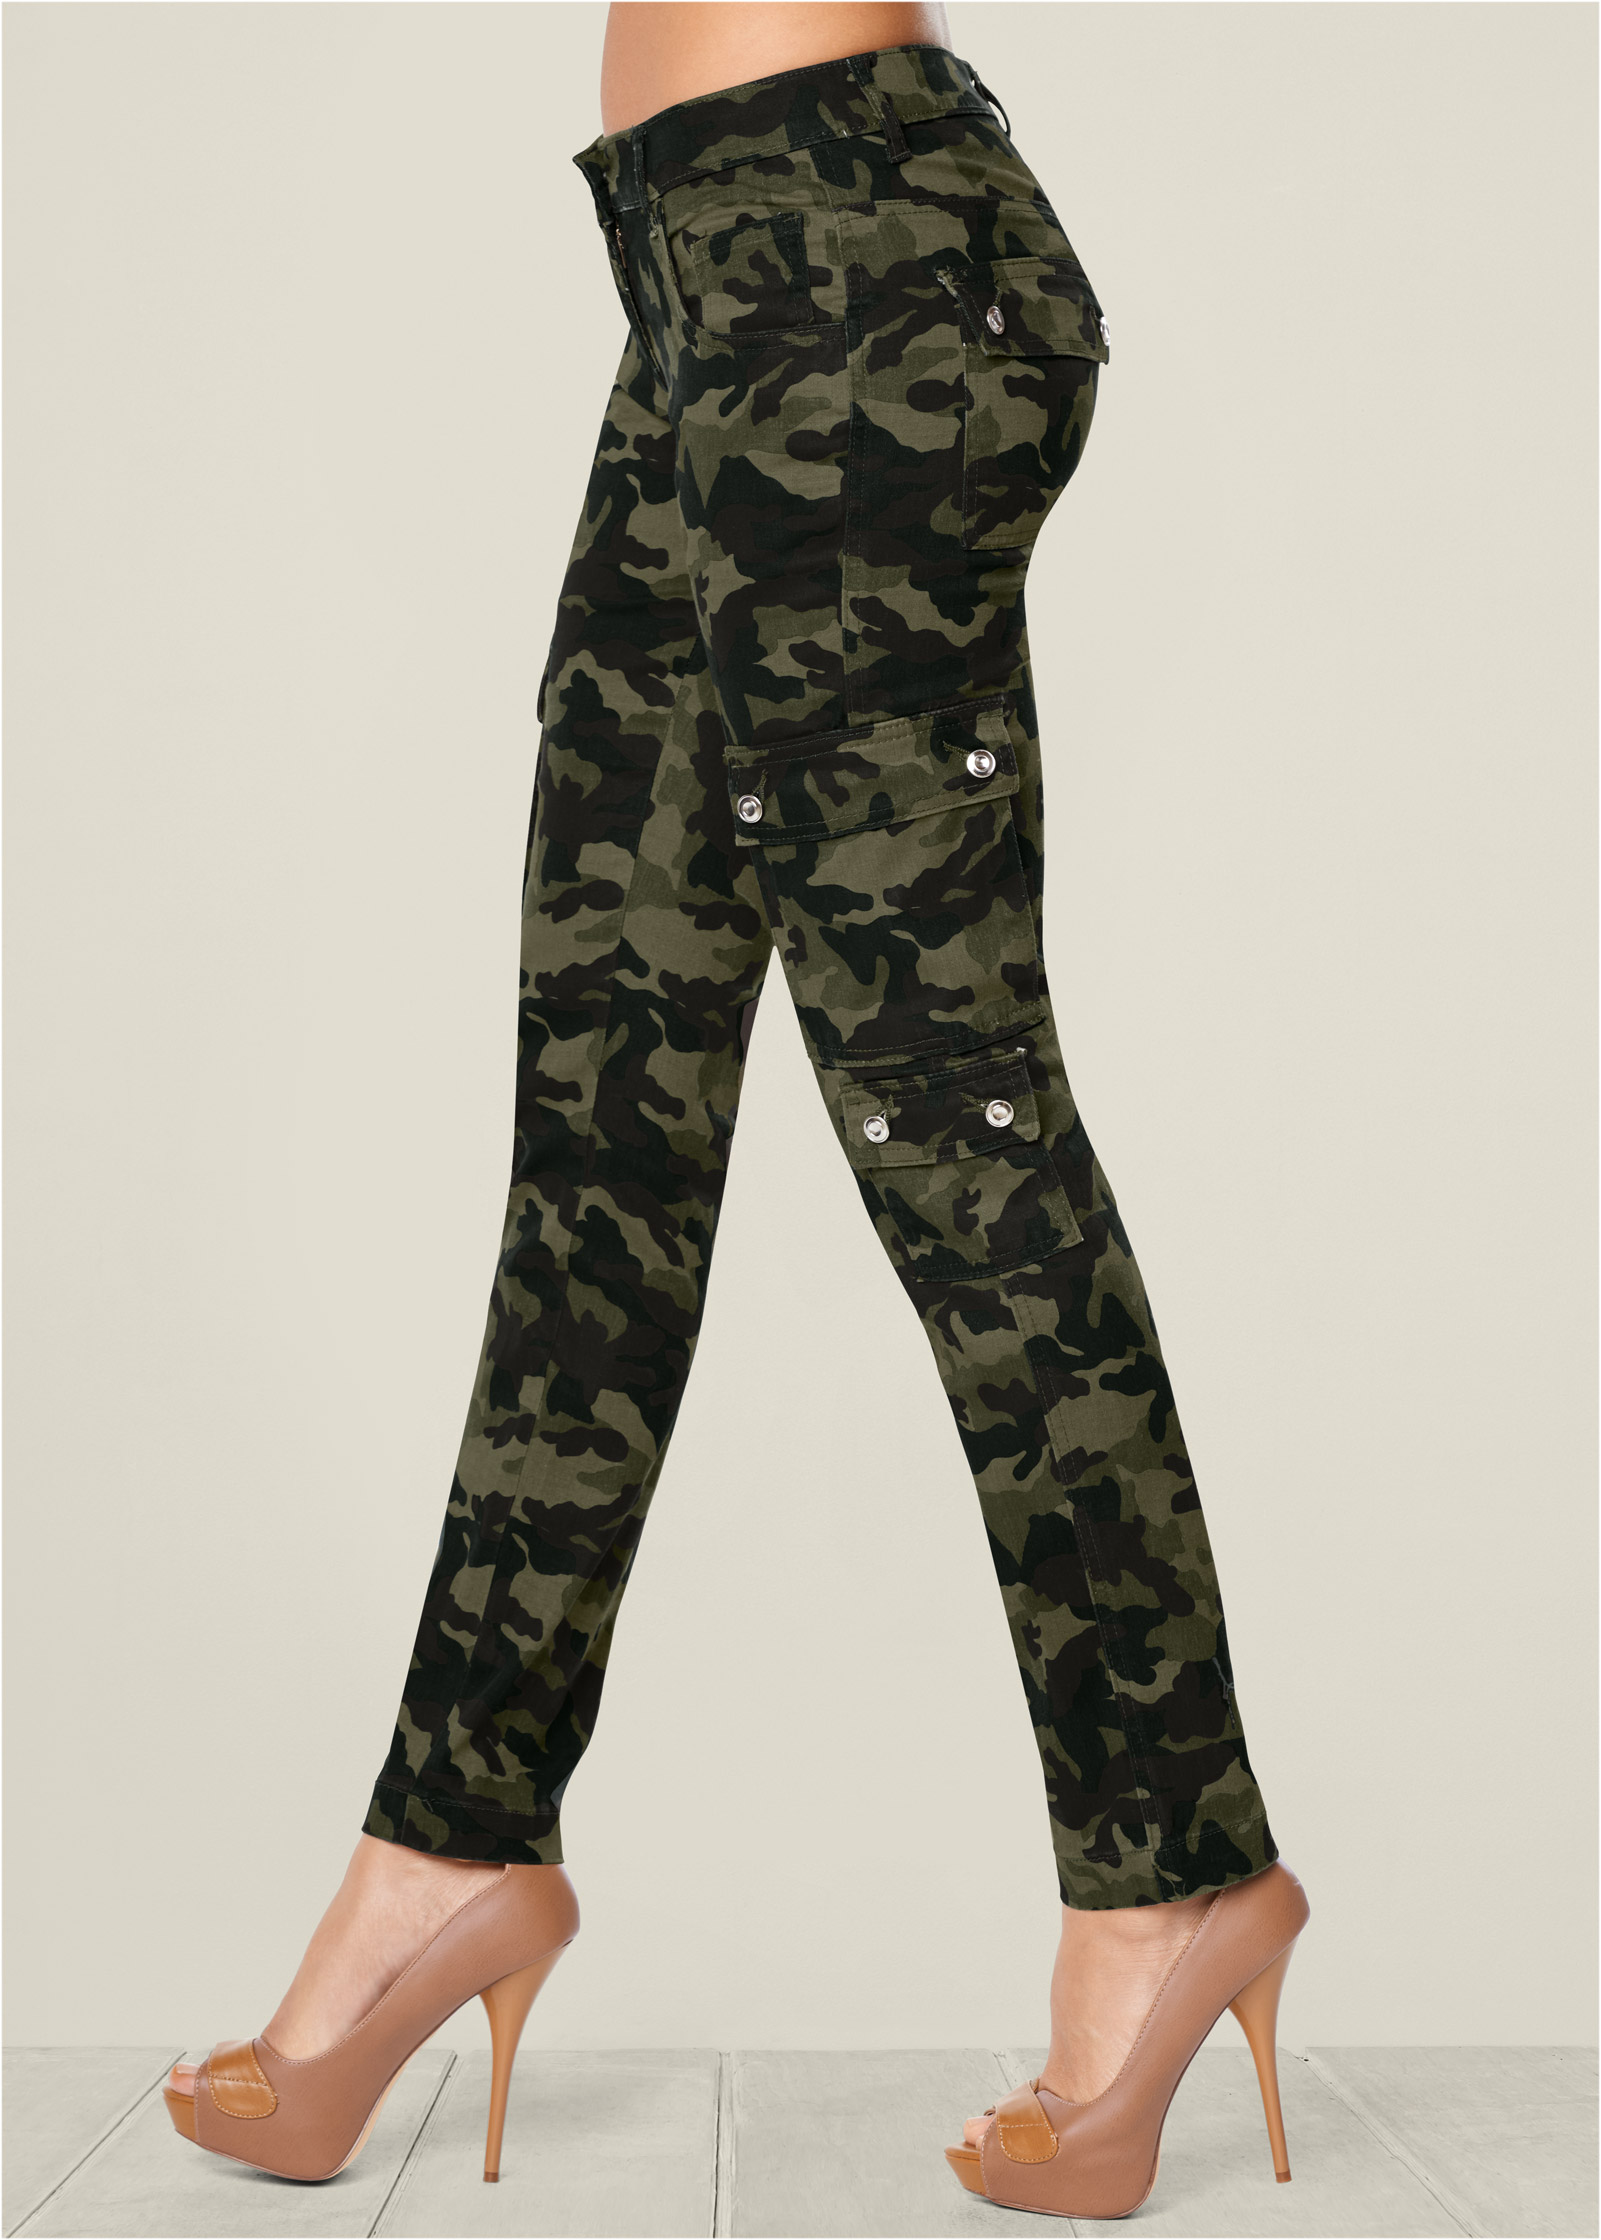 Urban Classics Ladies Camo Leggings Damen Leggings im Kamouflage Design